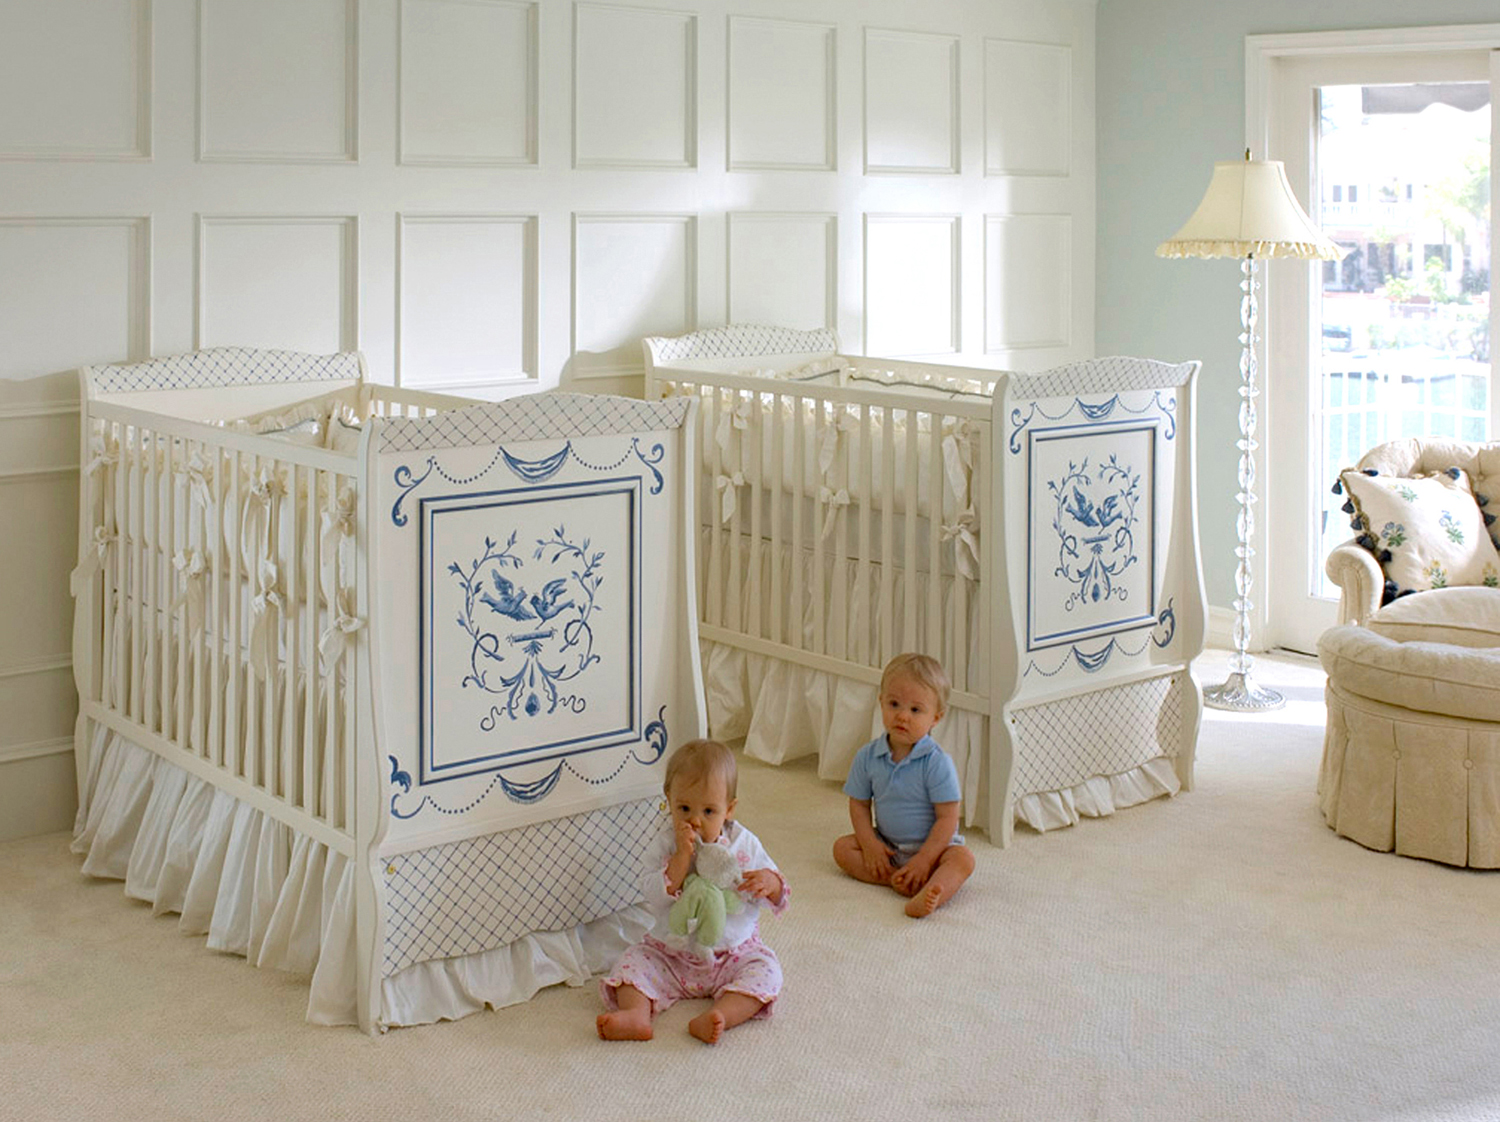 High cribs in a sunny twin nursery